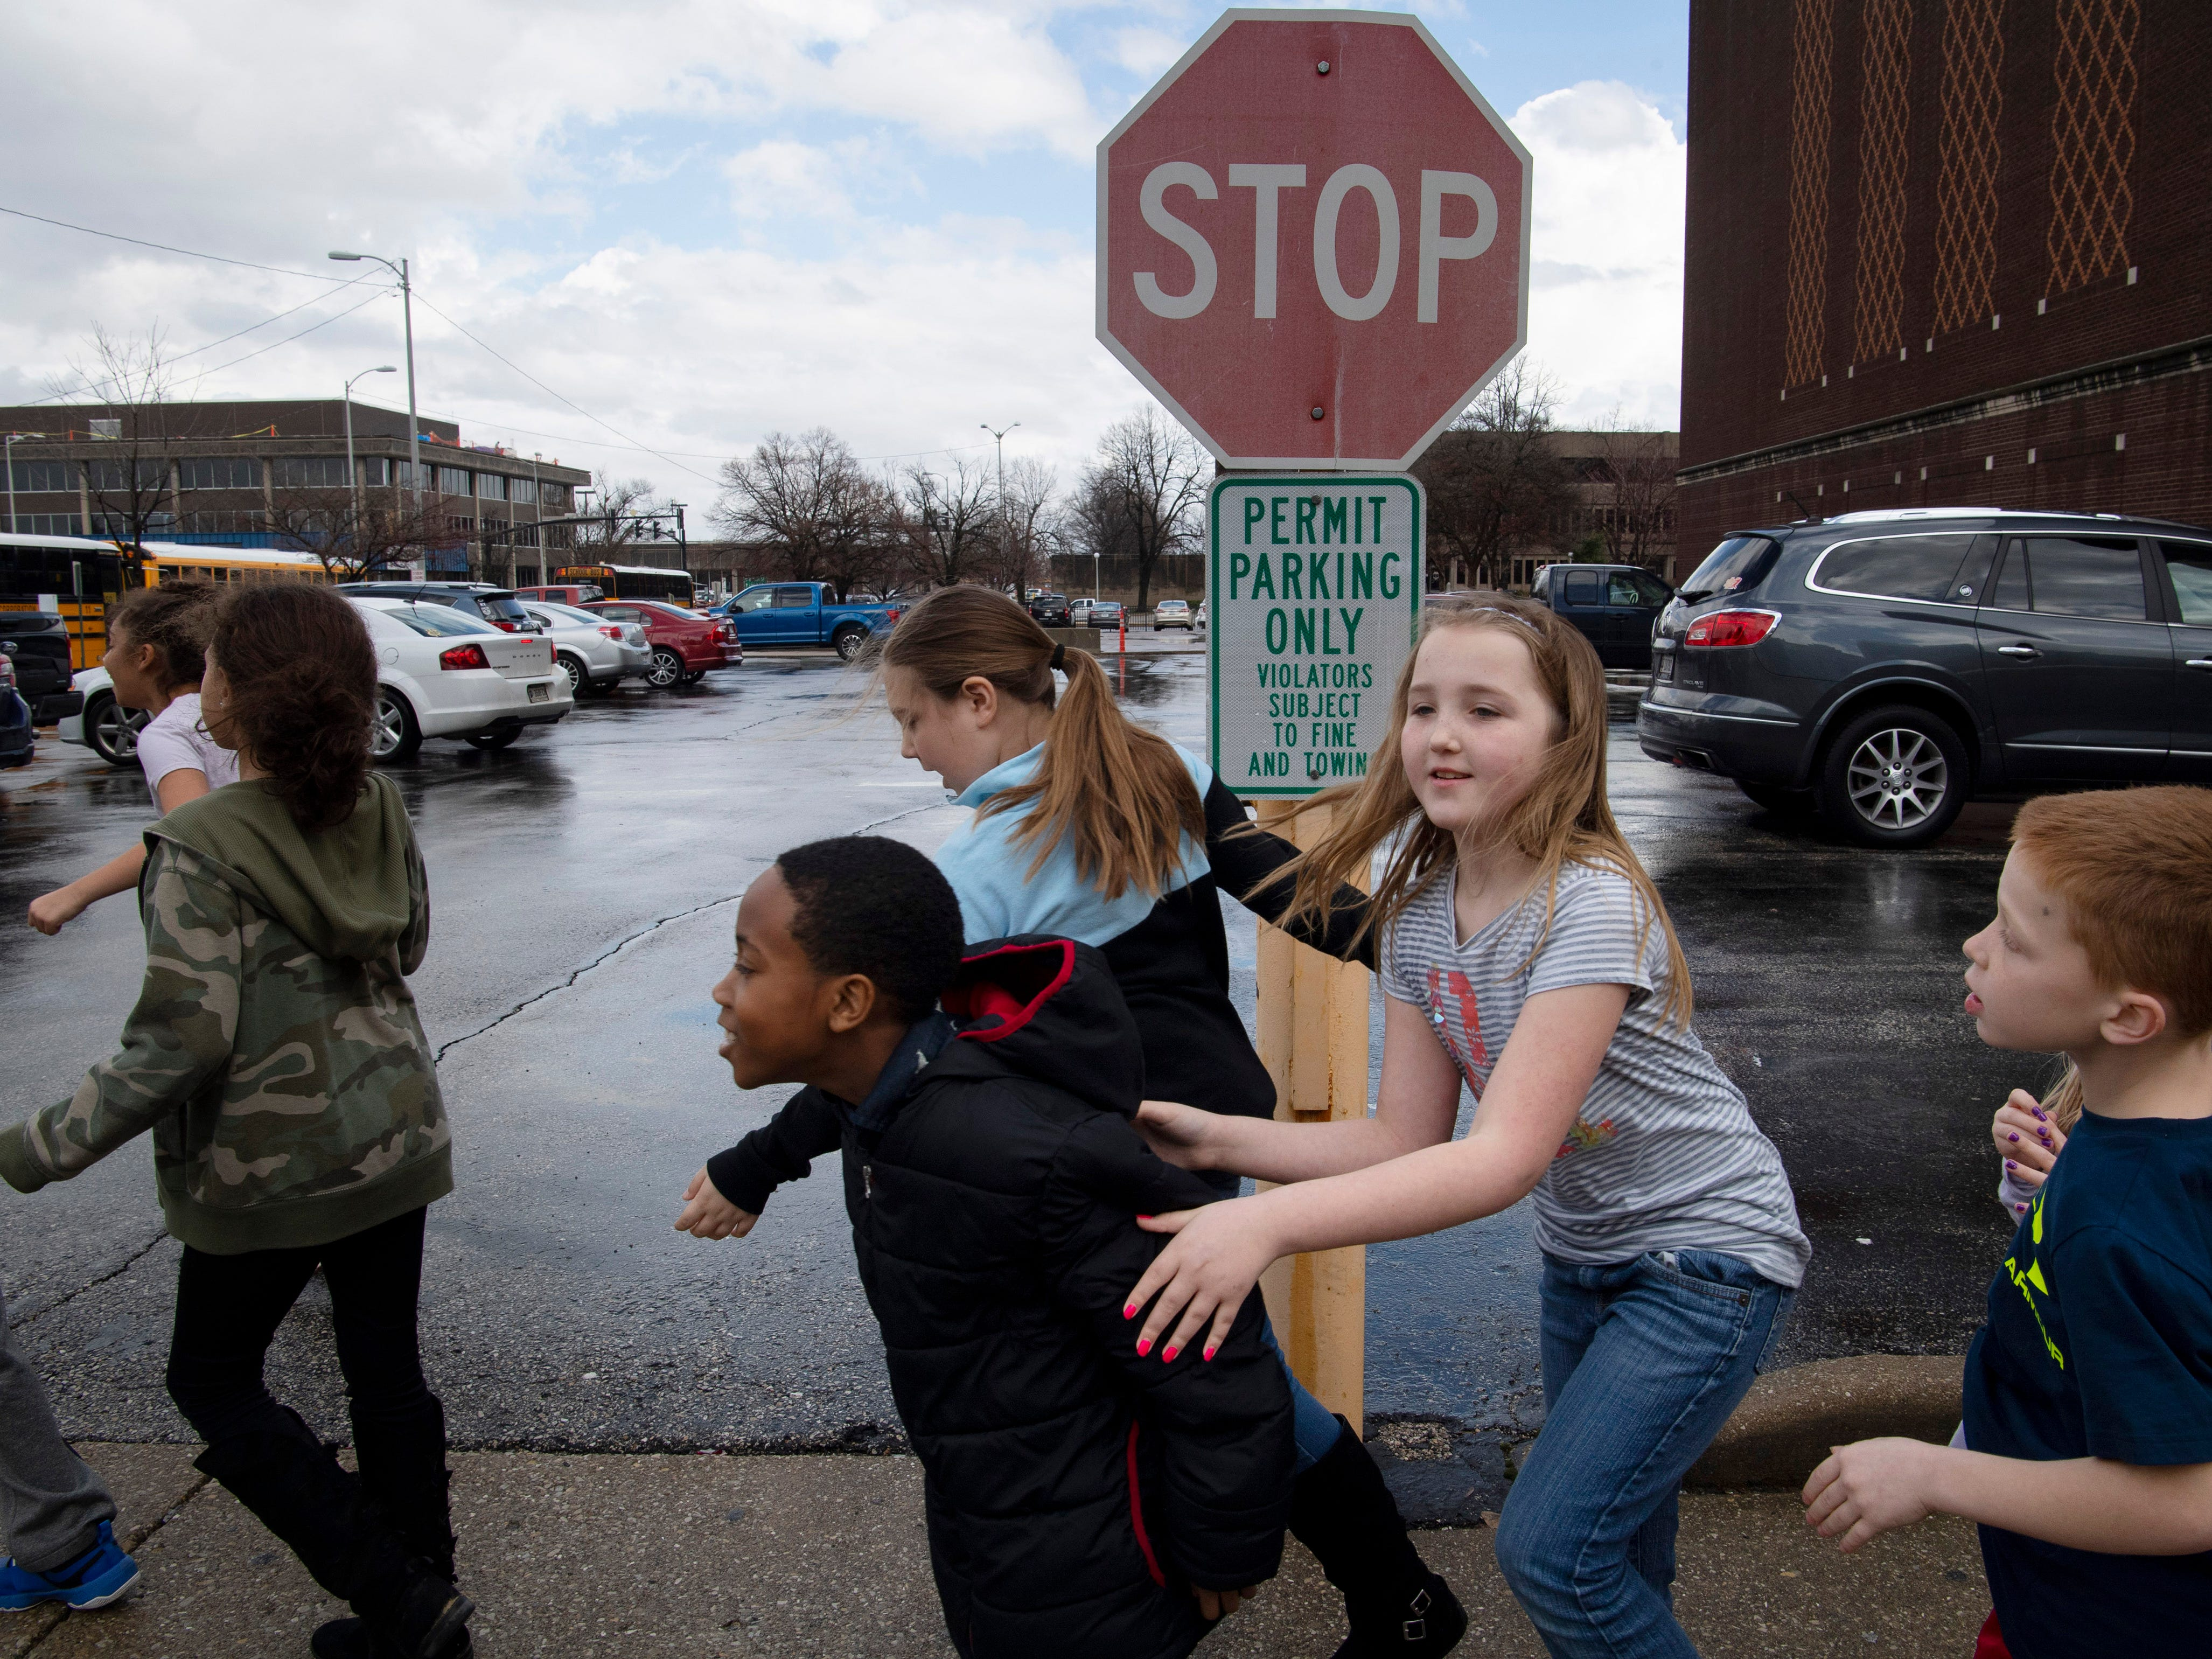 Elementary school students head for their buses after being allowed to leave The Victory Thursday afternoon. The kids were attending the Young People's Concerts performed by the Evansville Philharmonic Orchestra when a series of tornado warnings necessitated the students take shelter in the building's basement and auditorium.